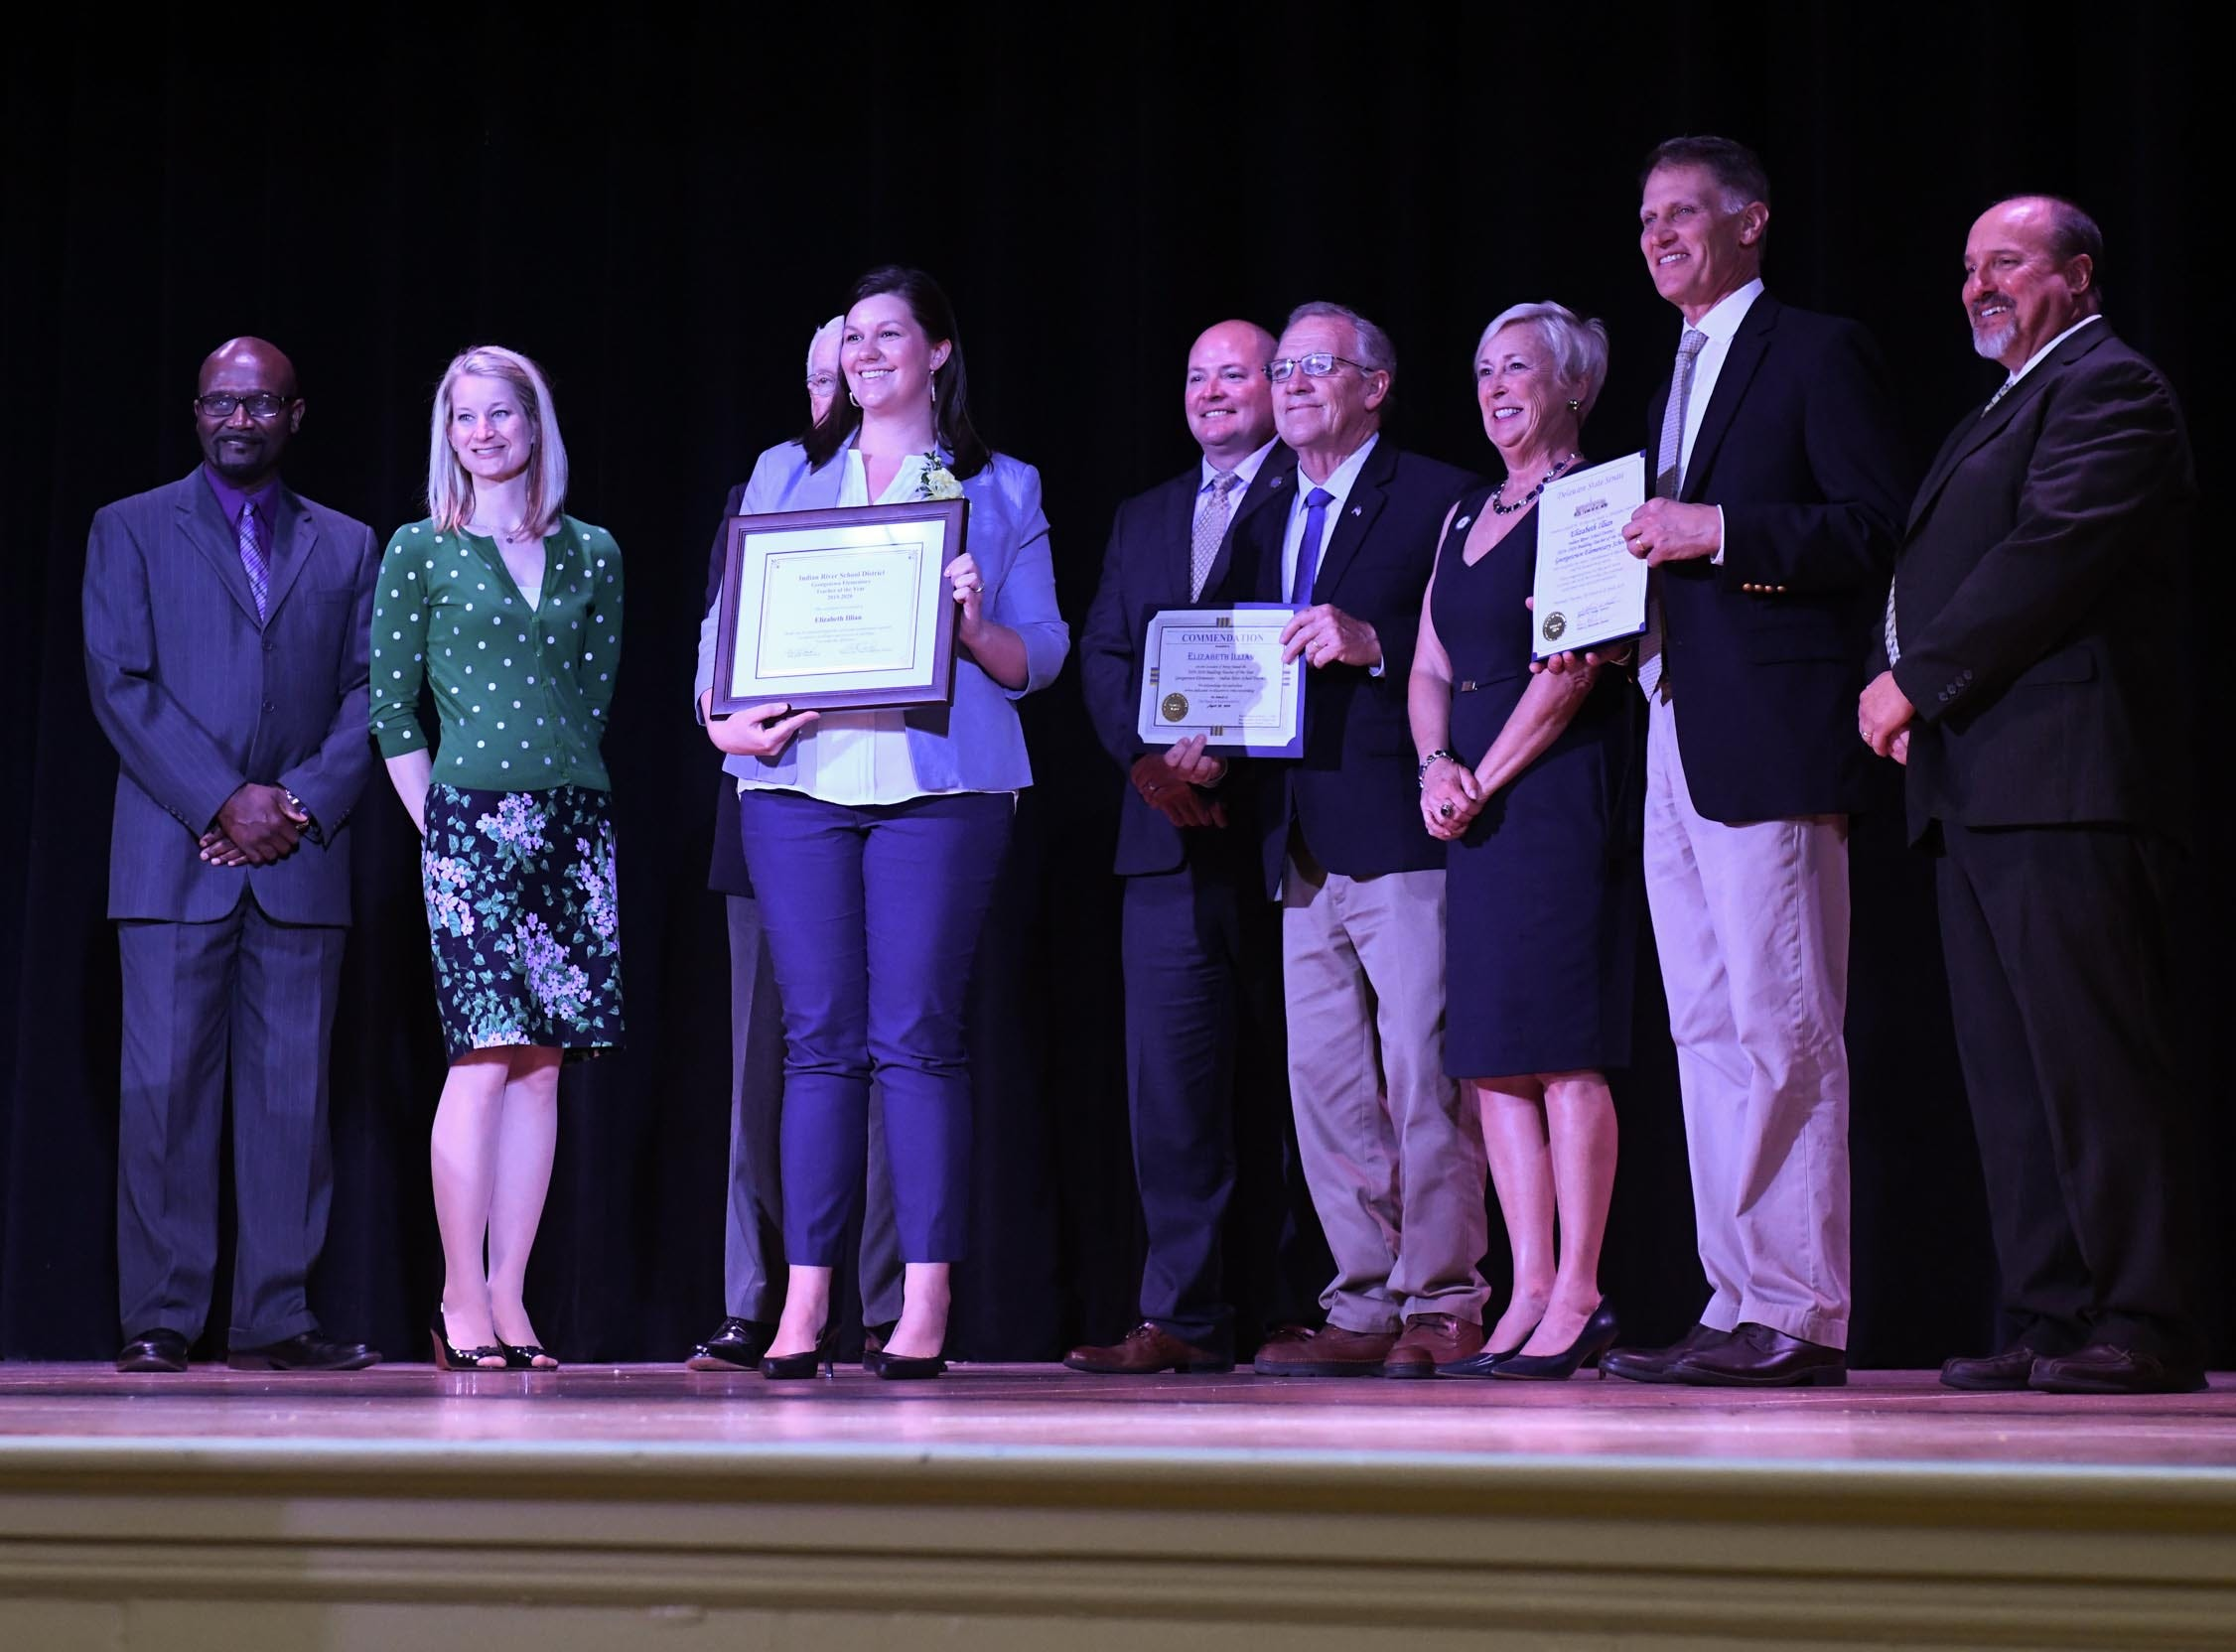 Elizabeth Illian, Georgetown Elementary, receives her award for the teacher of the year at her school on Tuesday, April 30, 2019.